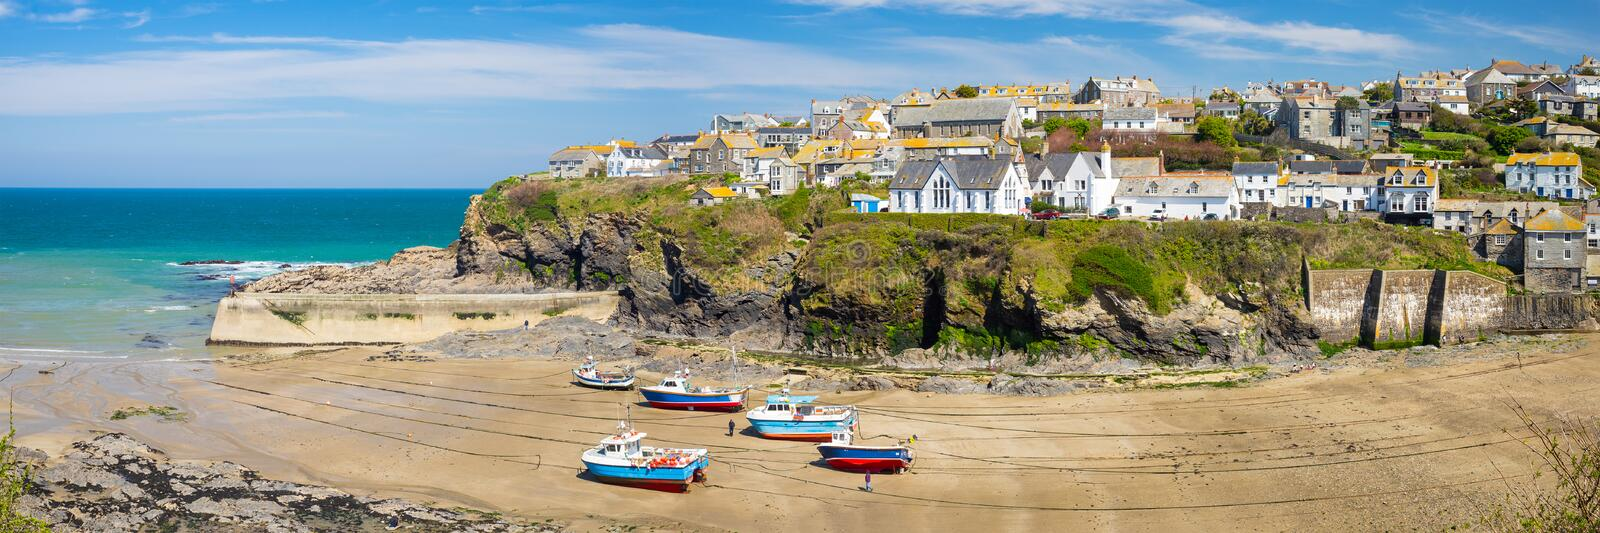 Port Isaac Cornwall England. Overlooking the harbour at the pretty fishing village of Port Isaac on the North Cornwall coast, England UK Europe stock image